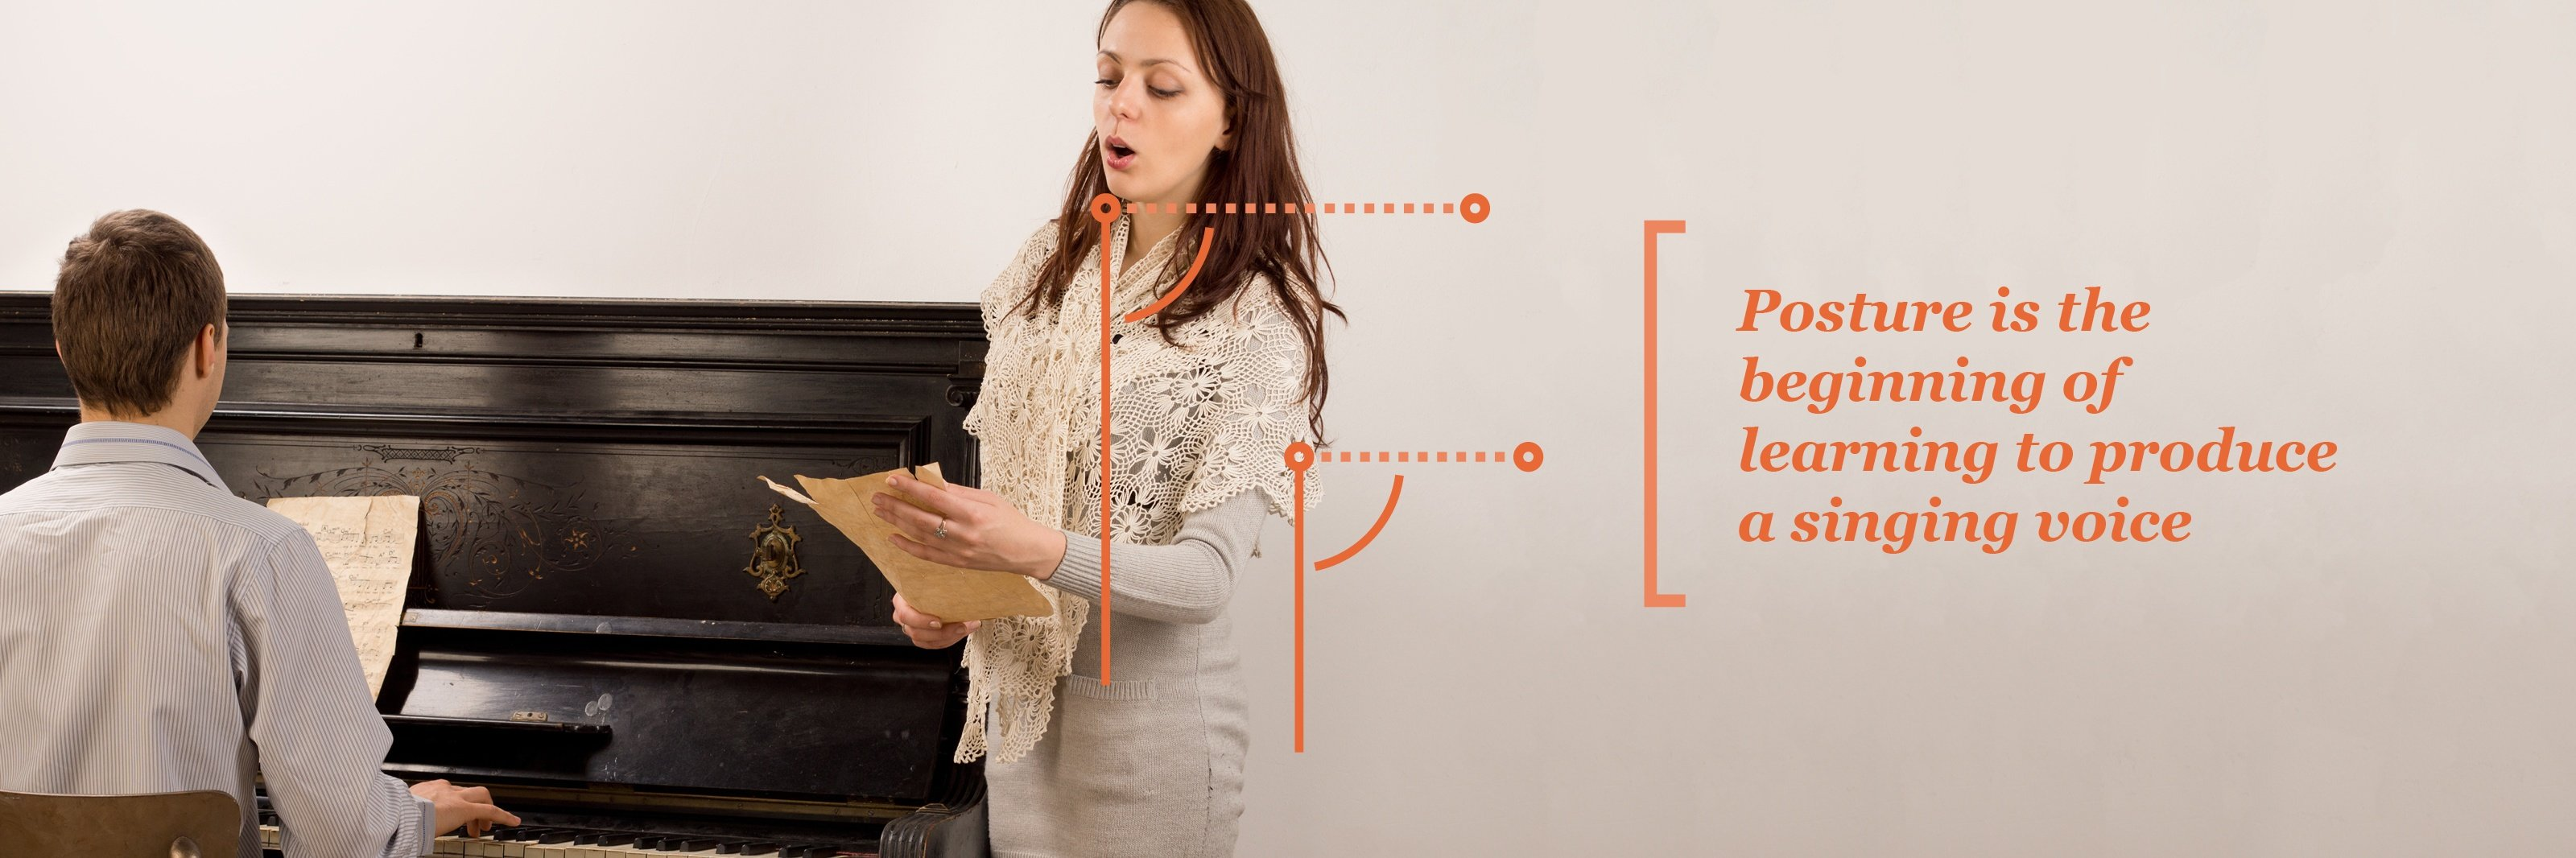 Posture is the beginning of learning to produce a singing voice